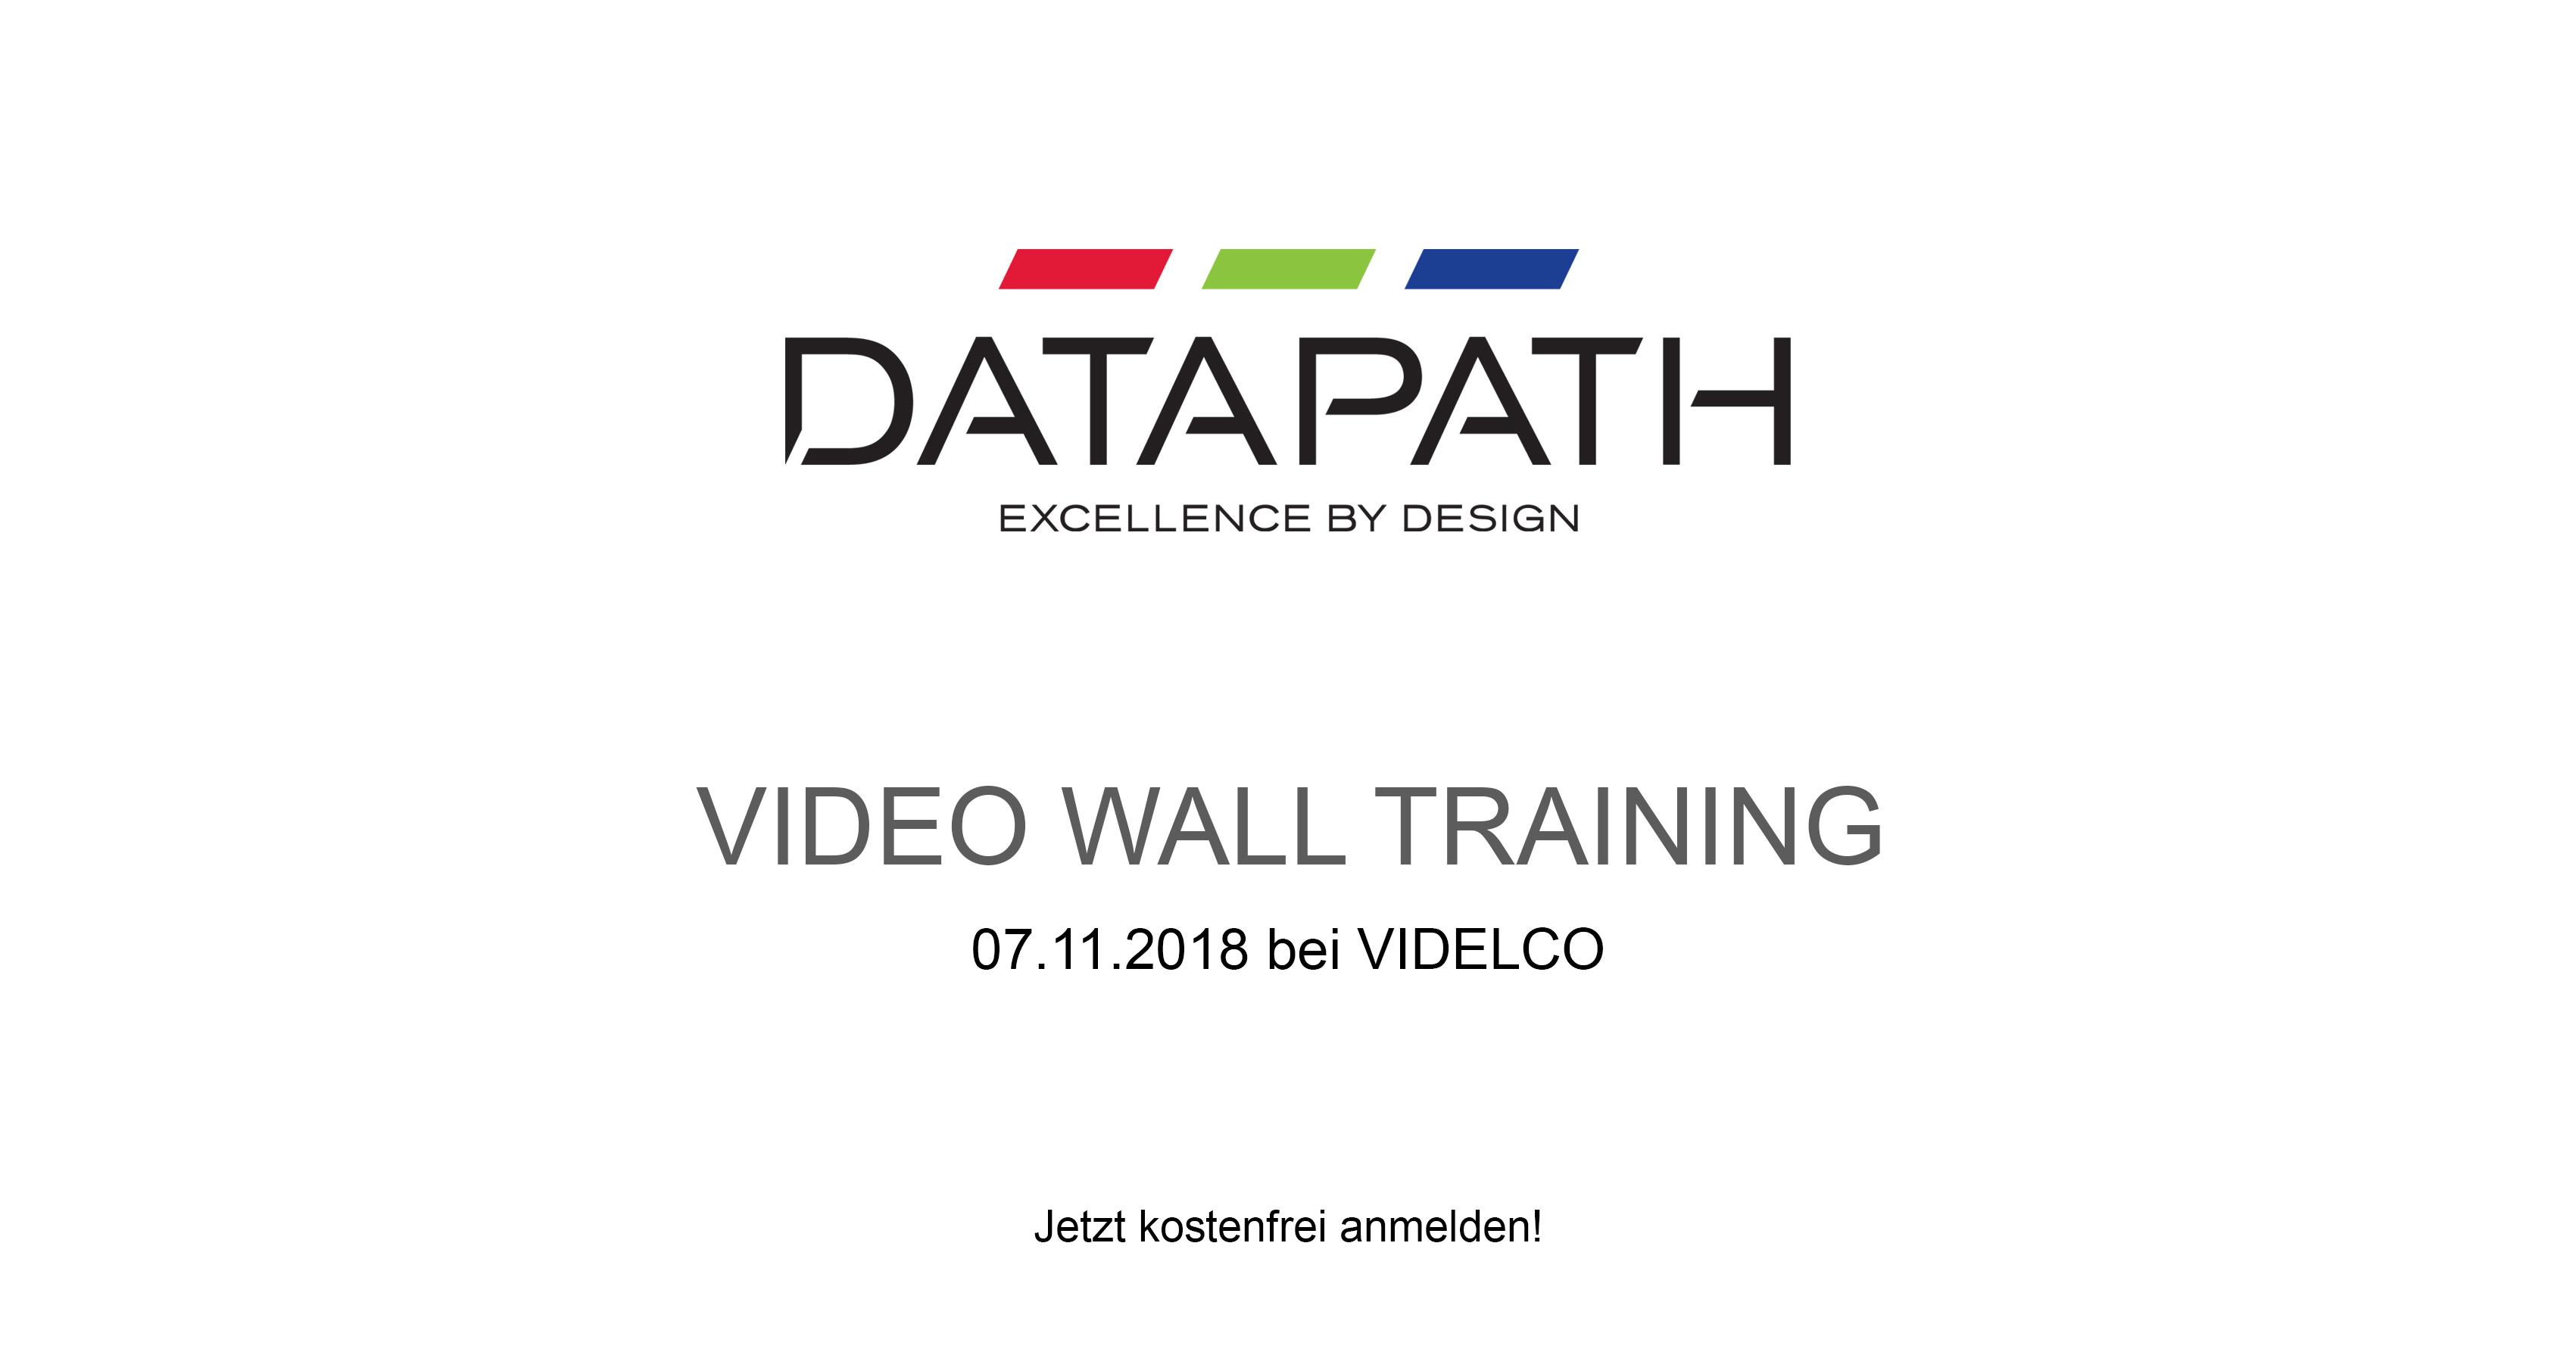 Datapath Videowall-Training